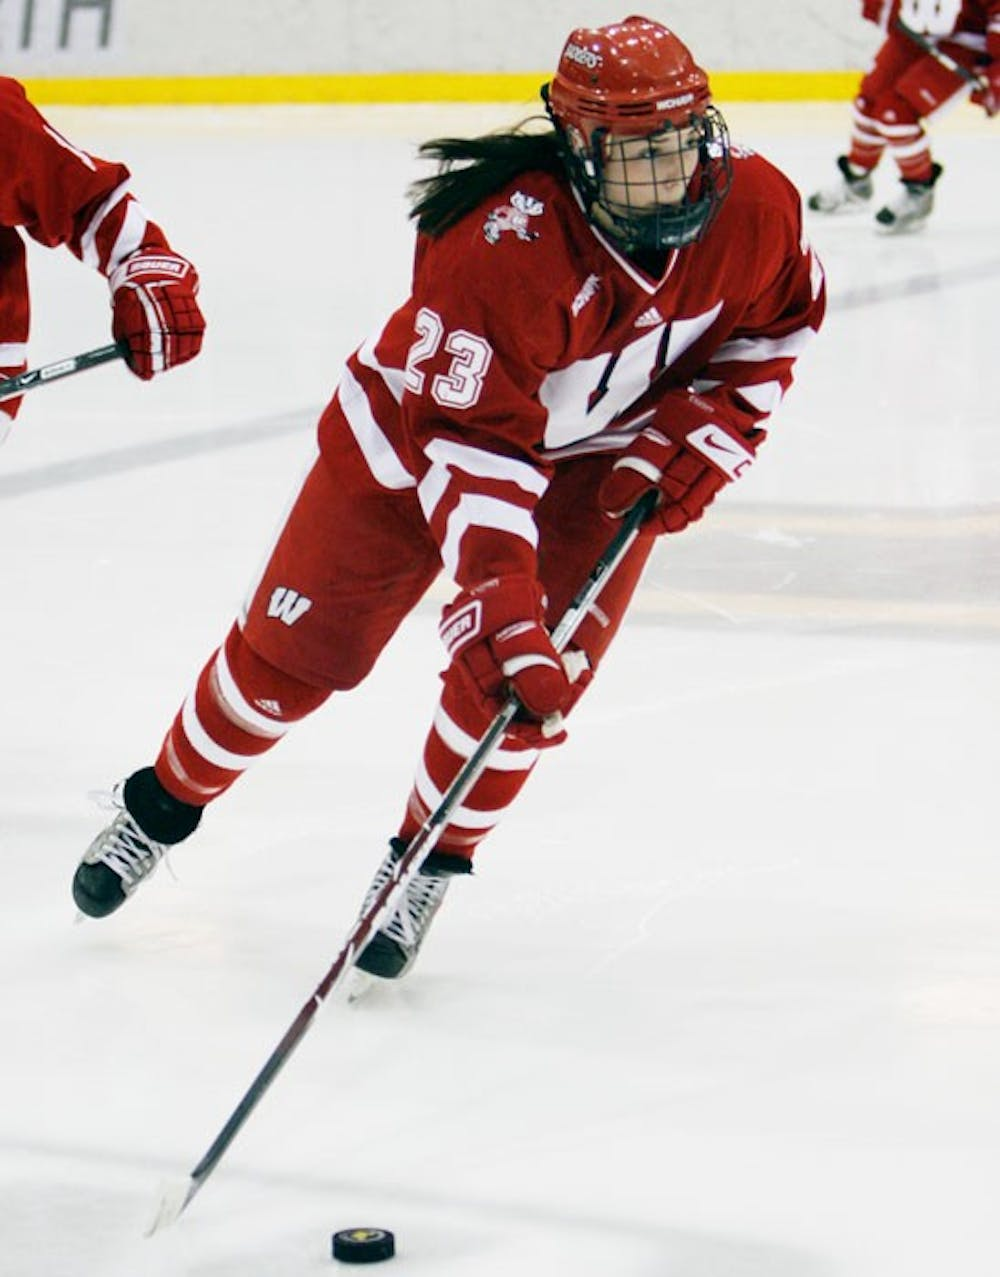 Two Badgers selected for Team USA, could be headed to Olympics